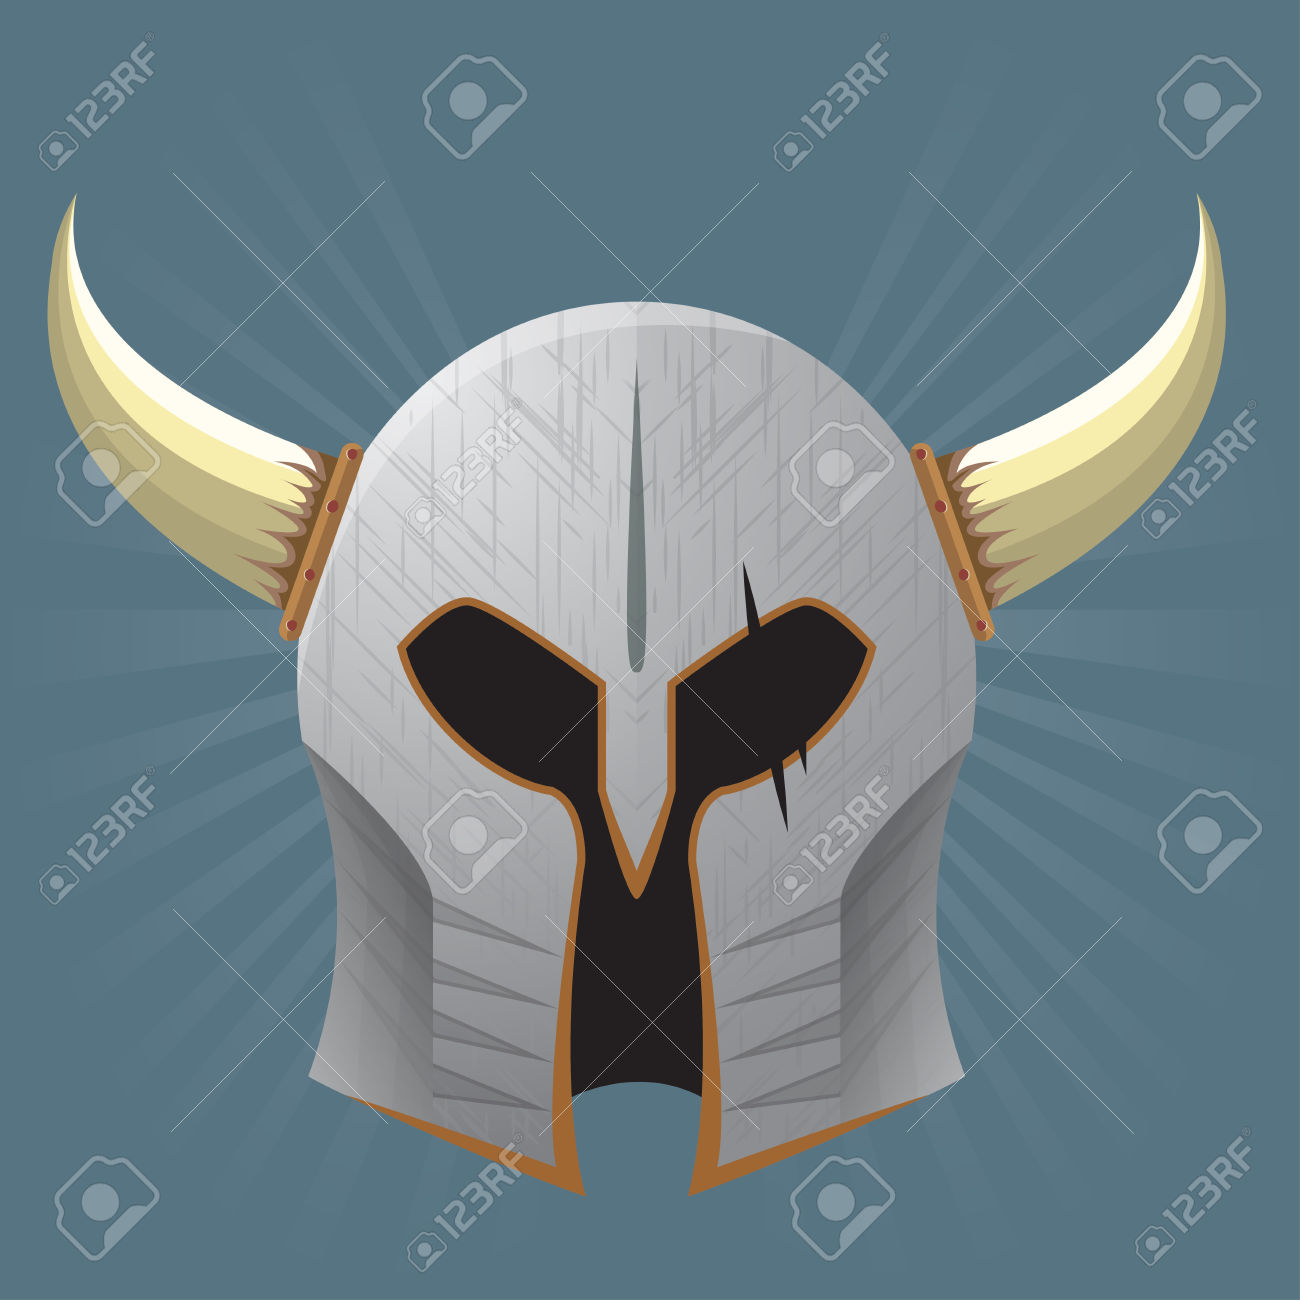 Silver Warrior Helmet With Horns And Scars Royalty Free Cliparts.